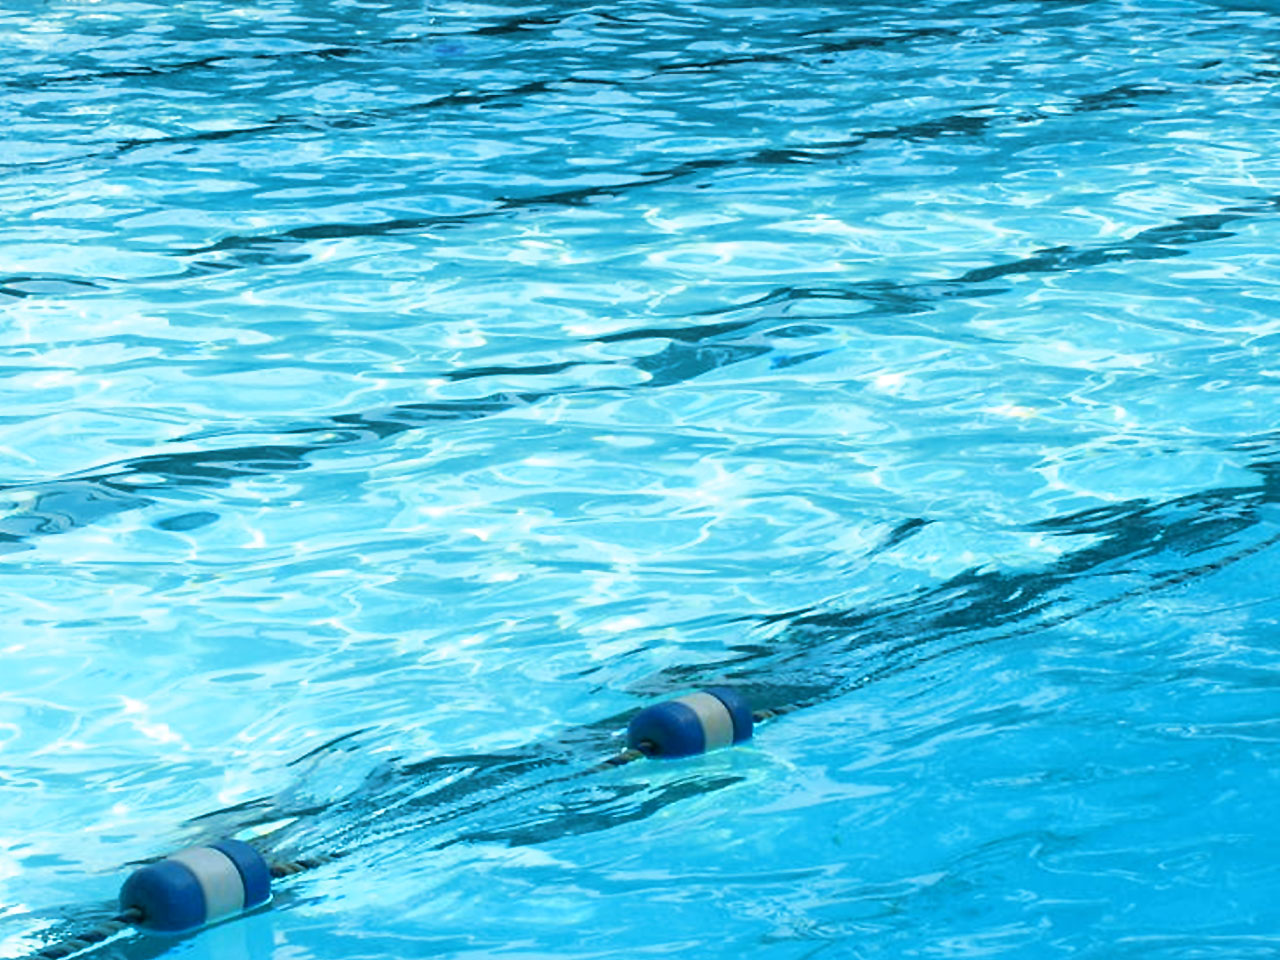 Swimming Accidents Are A Leading Cause Of Death Among Children